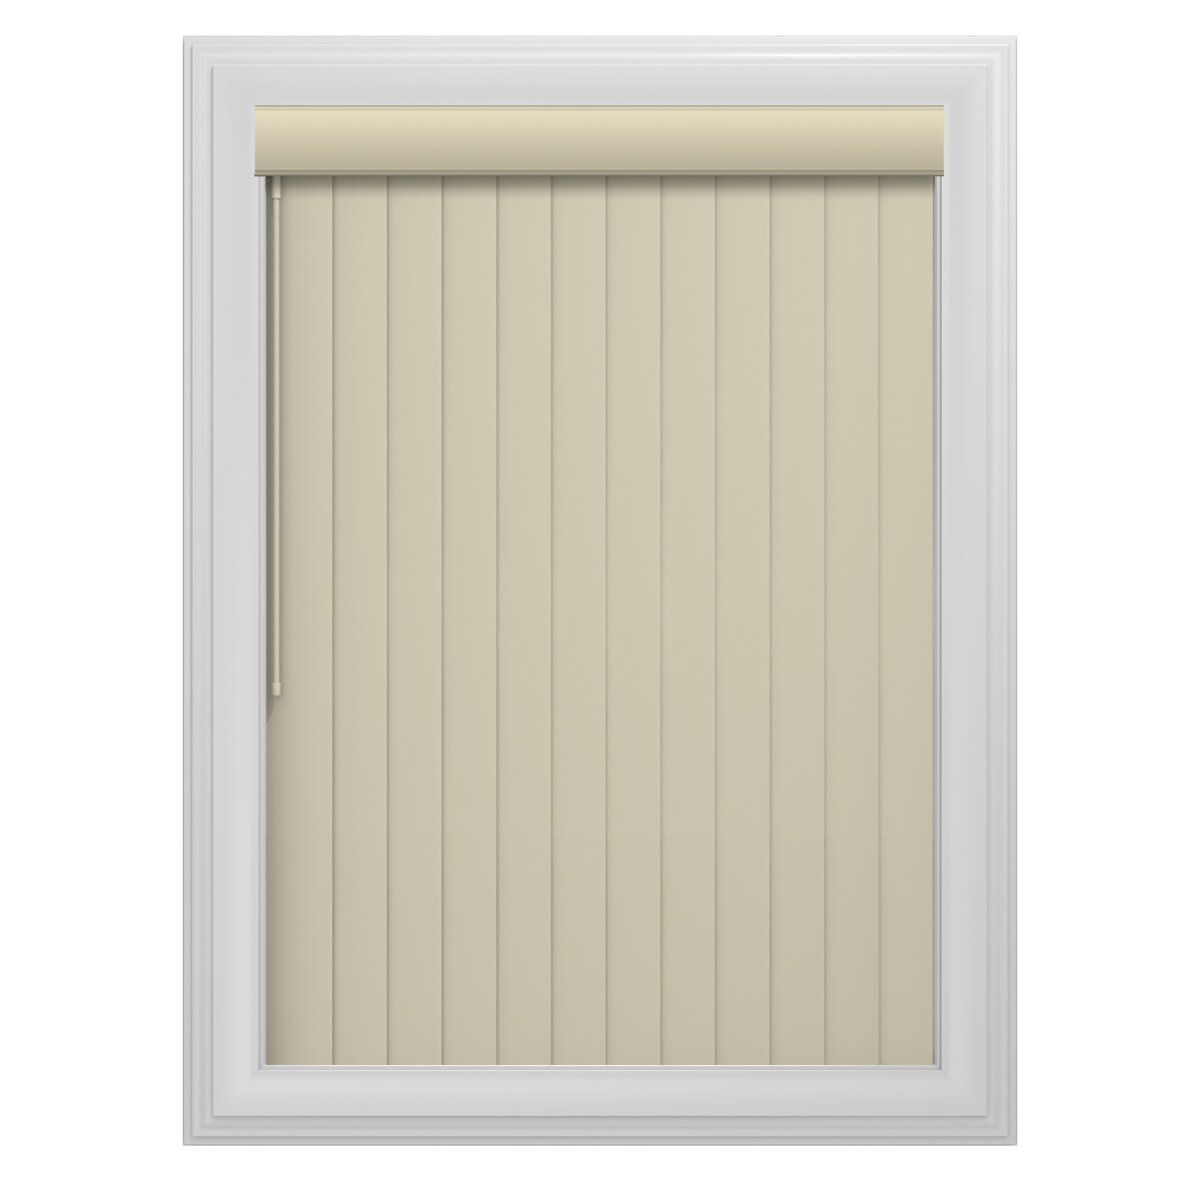 Baliblinds crown vertical blind wayfair for Bali blinds